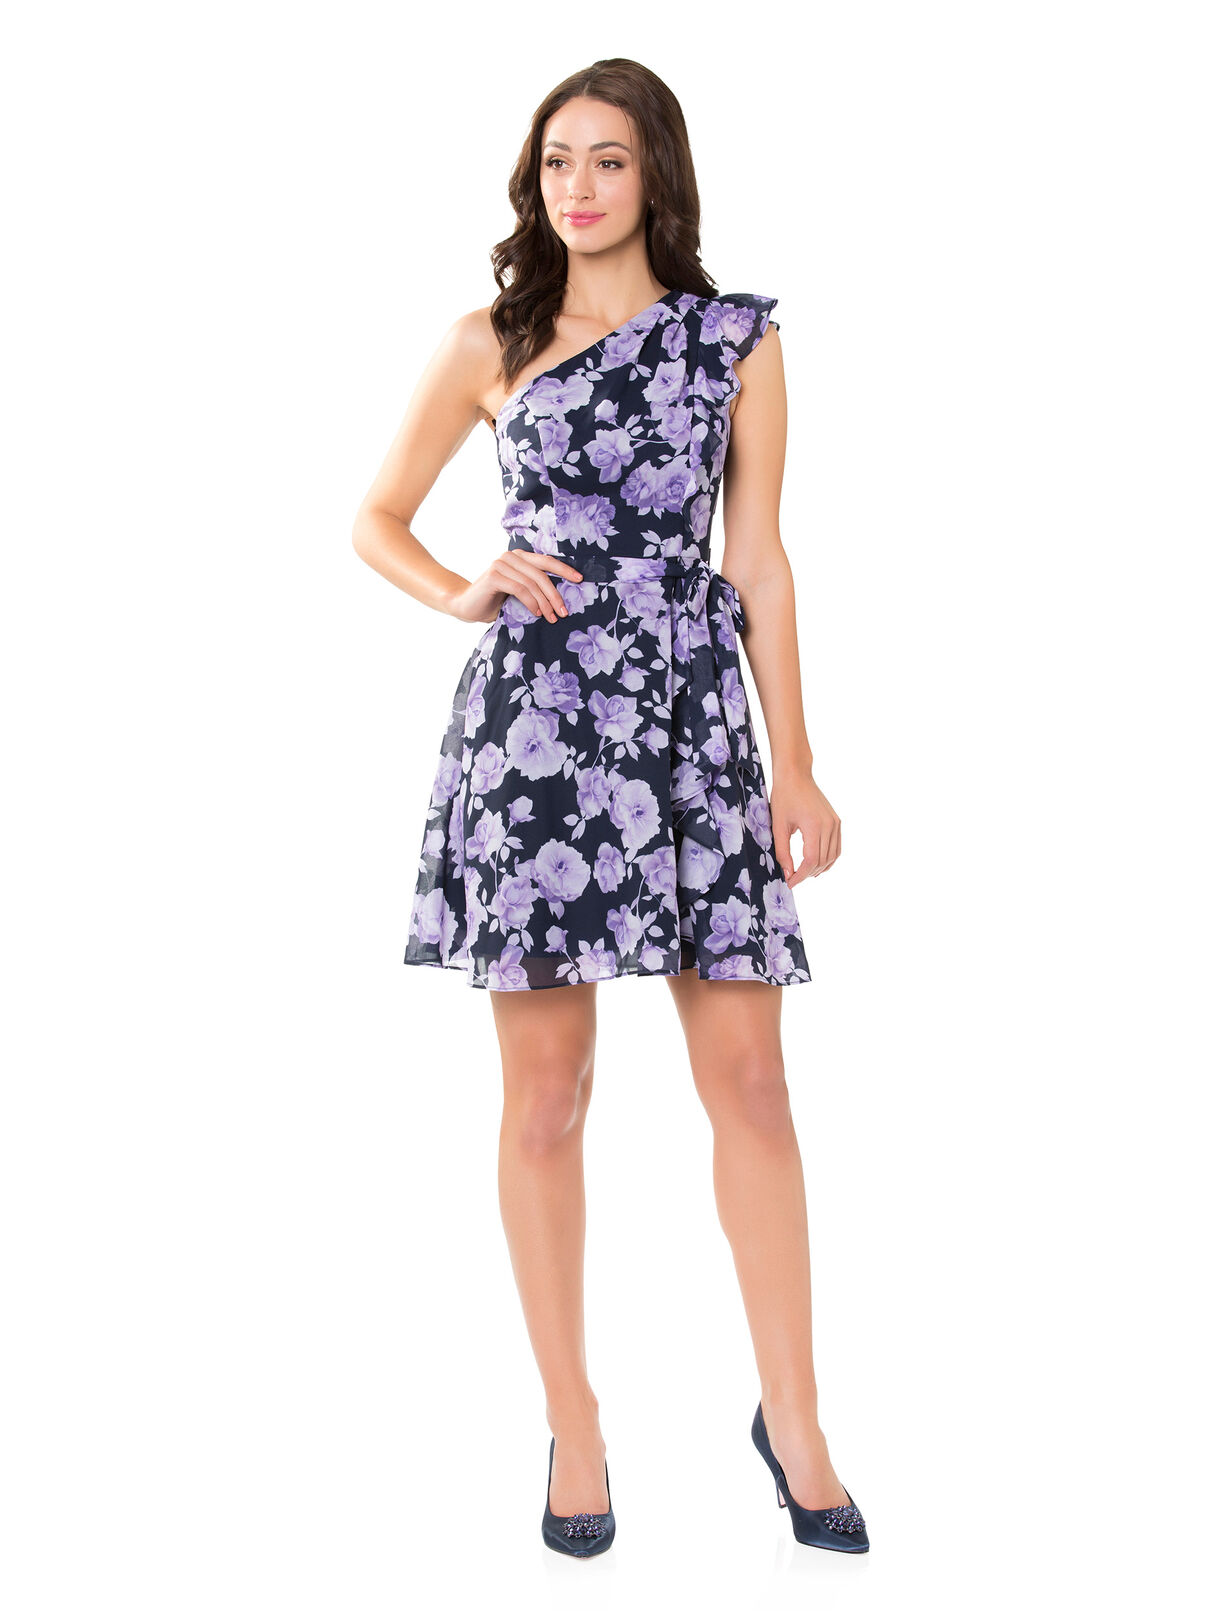 Miss Violetta Dress | Tuggl